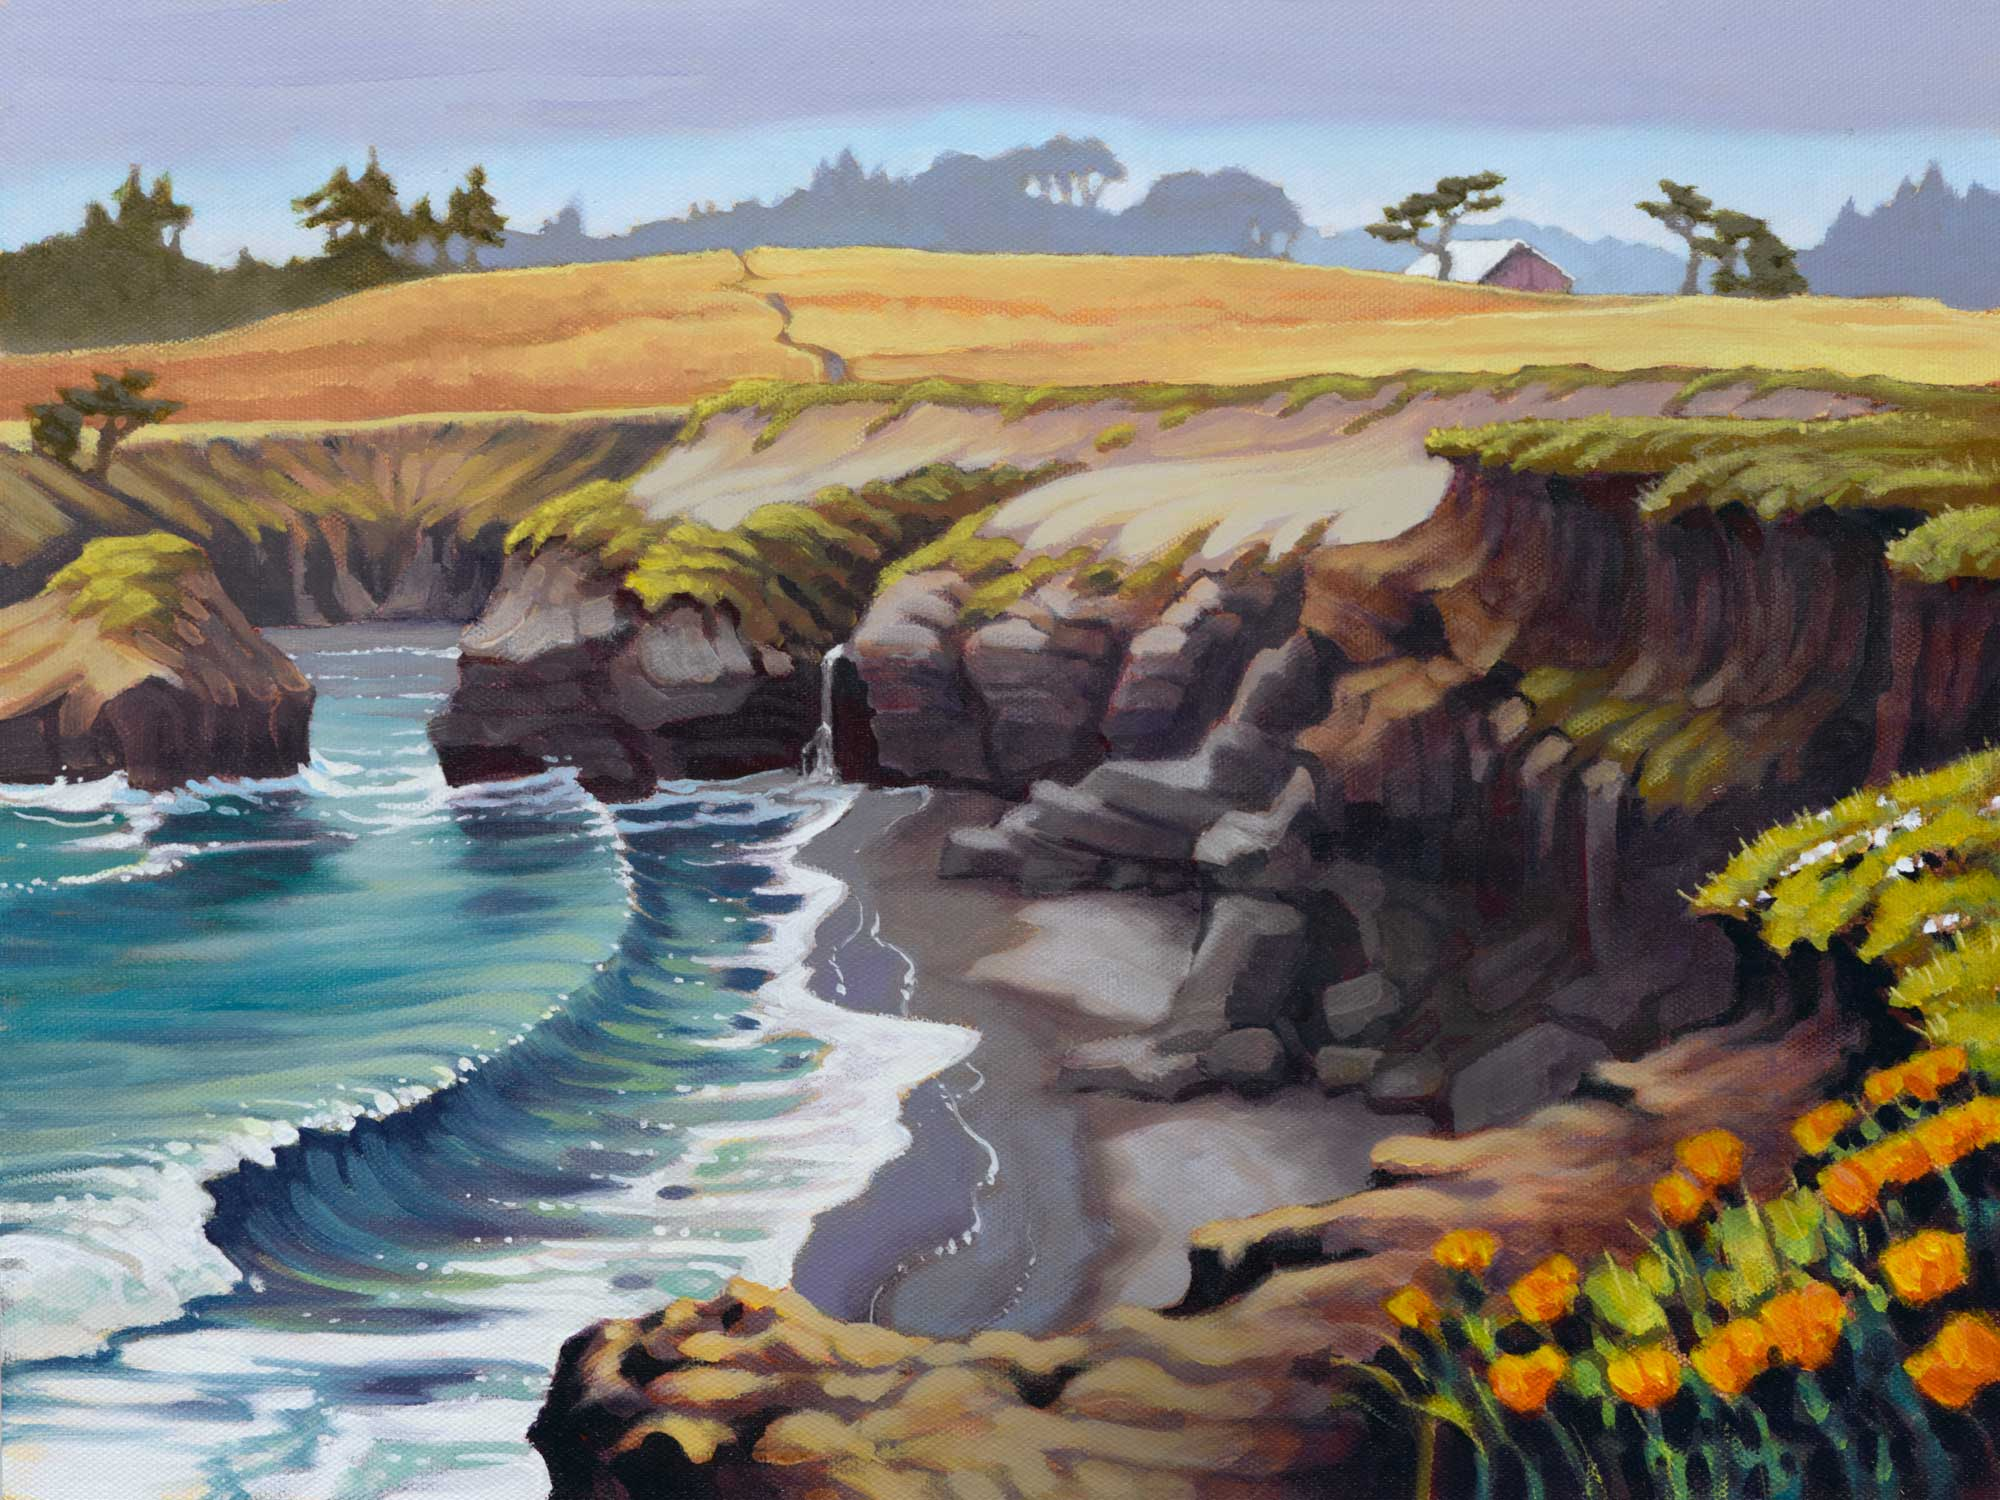 Plein air landscape painting of a rocky cove at Spring Ranch on the Mendocino coast of northern California